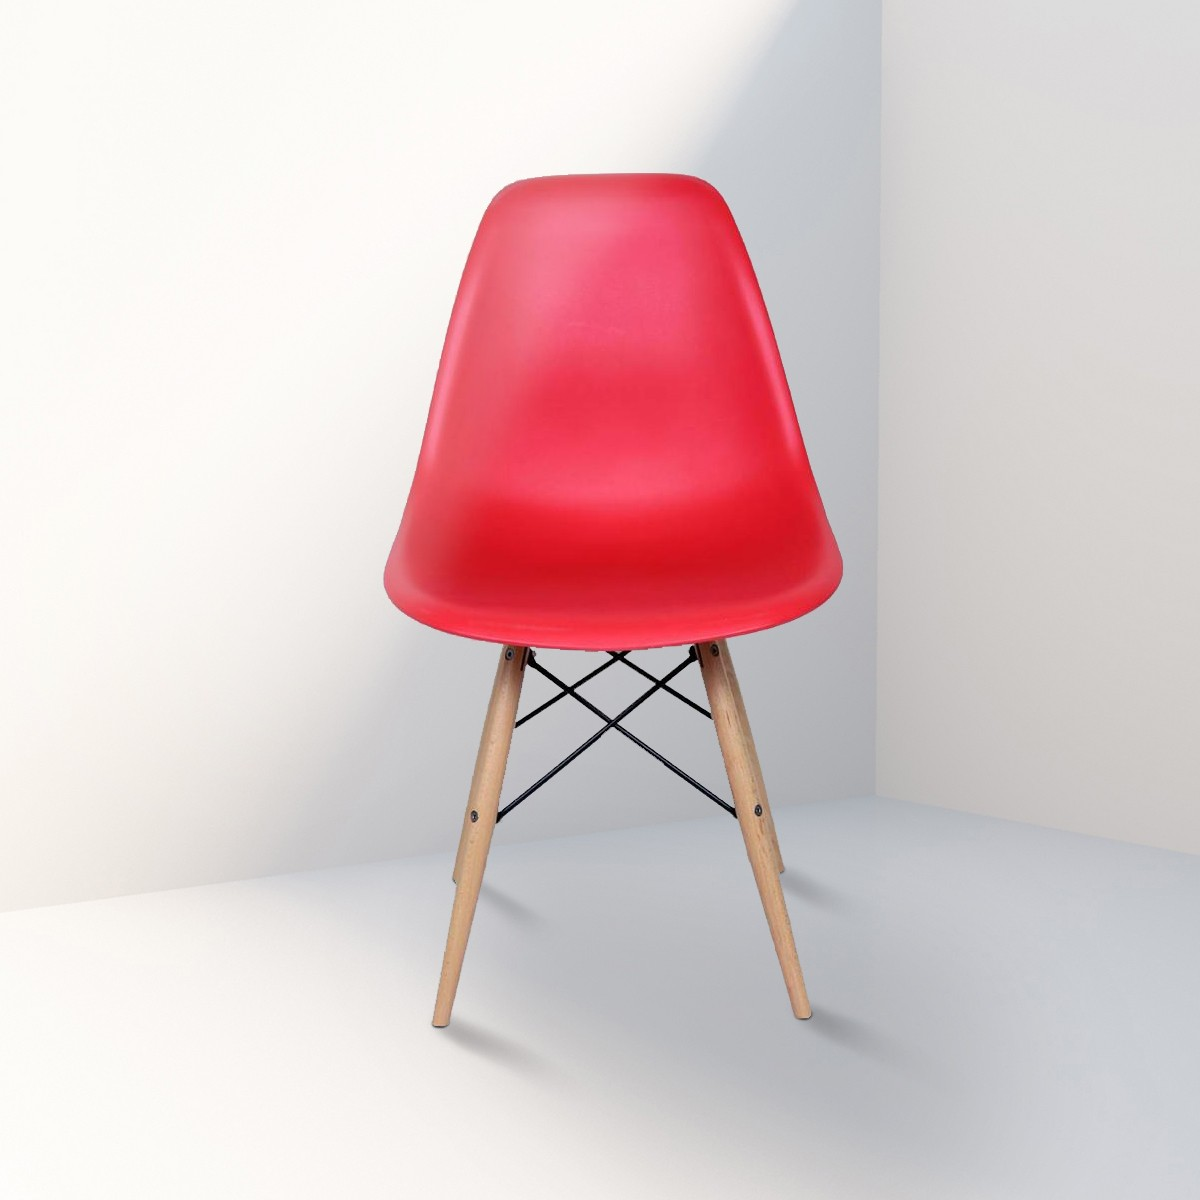 Molded Plastic Chair in Red with Wood Legs (T811E006-RD)